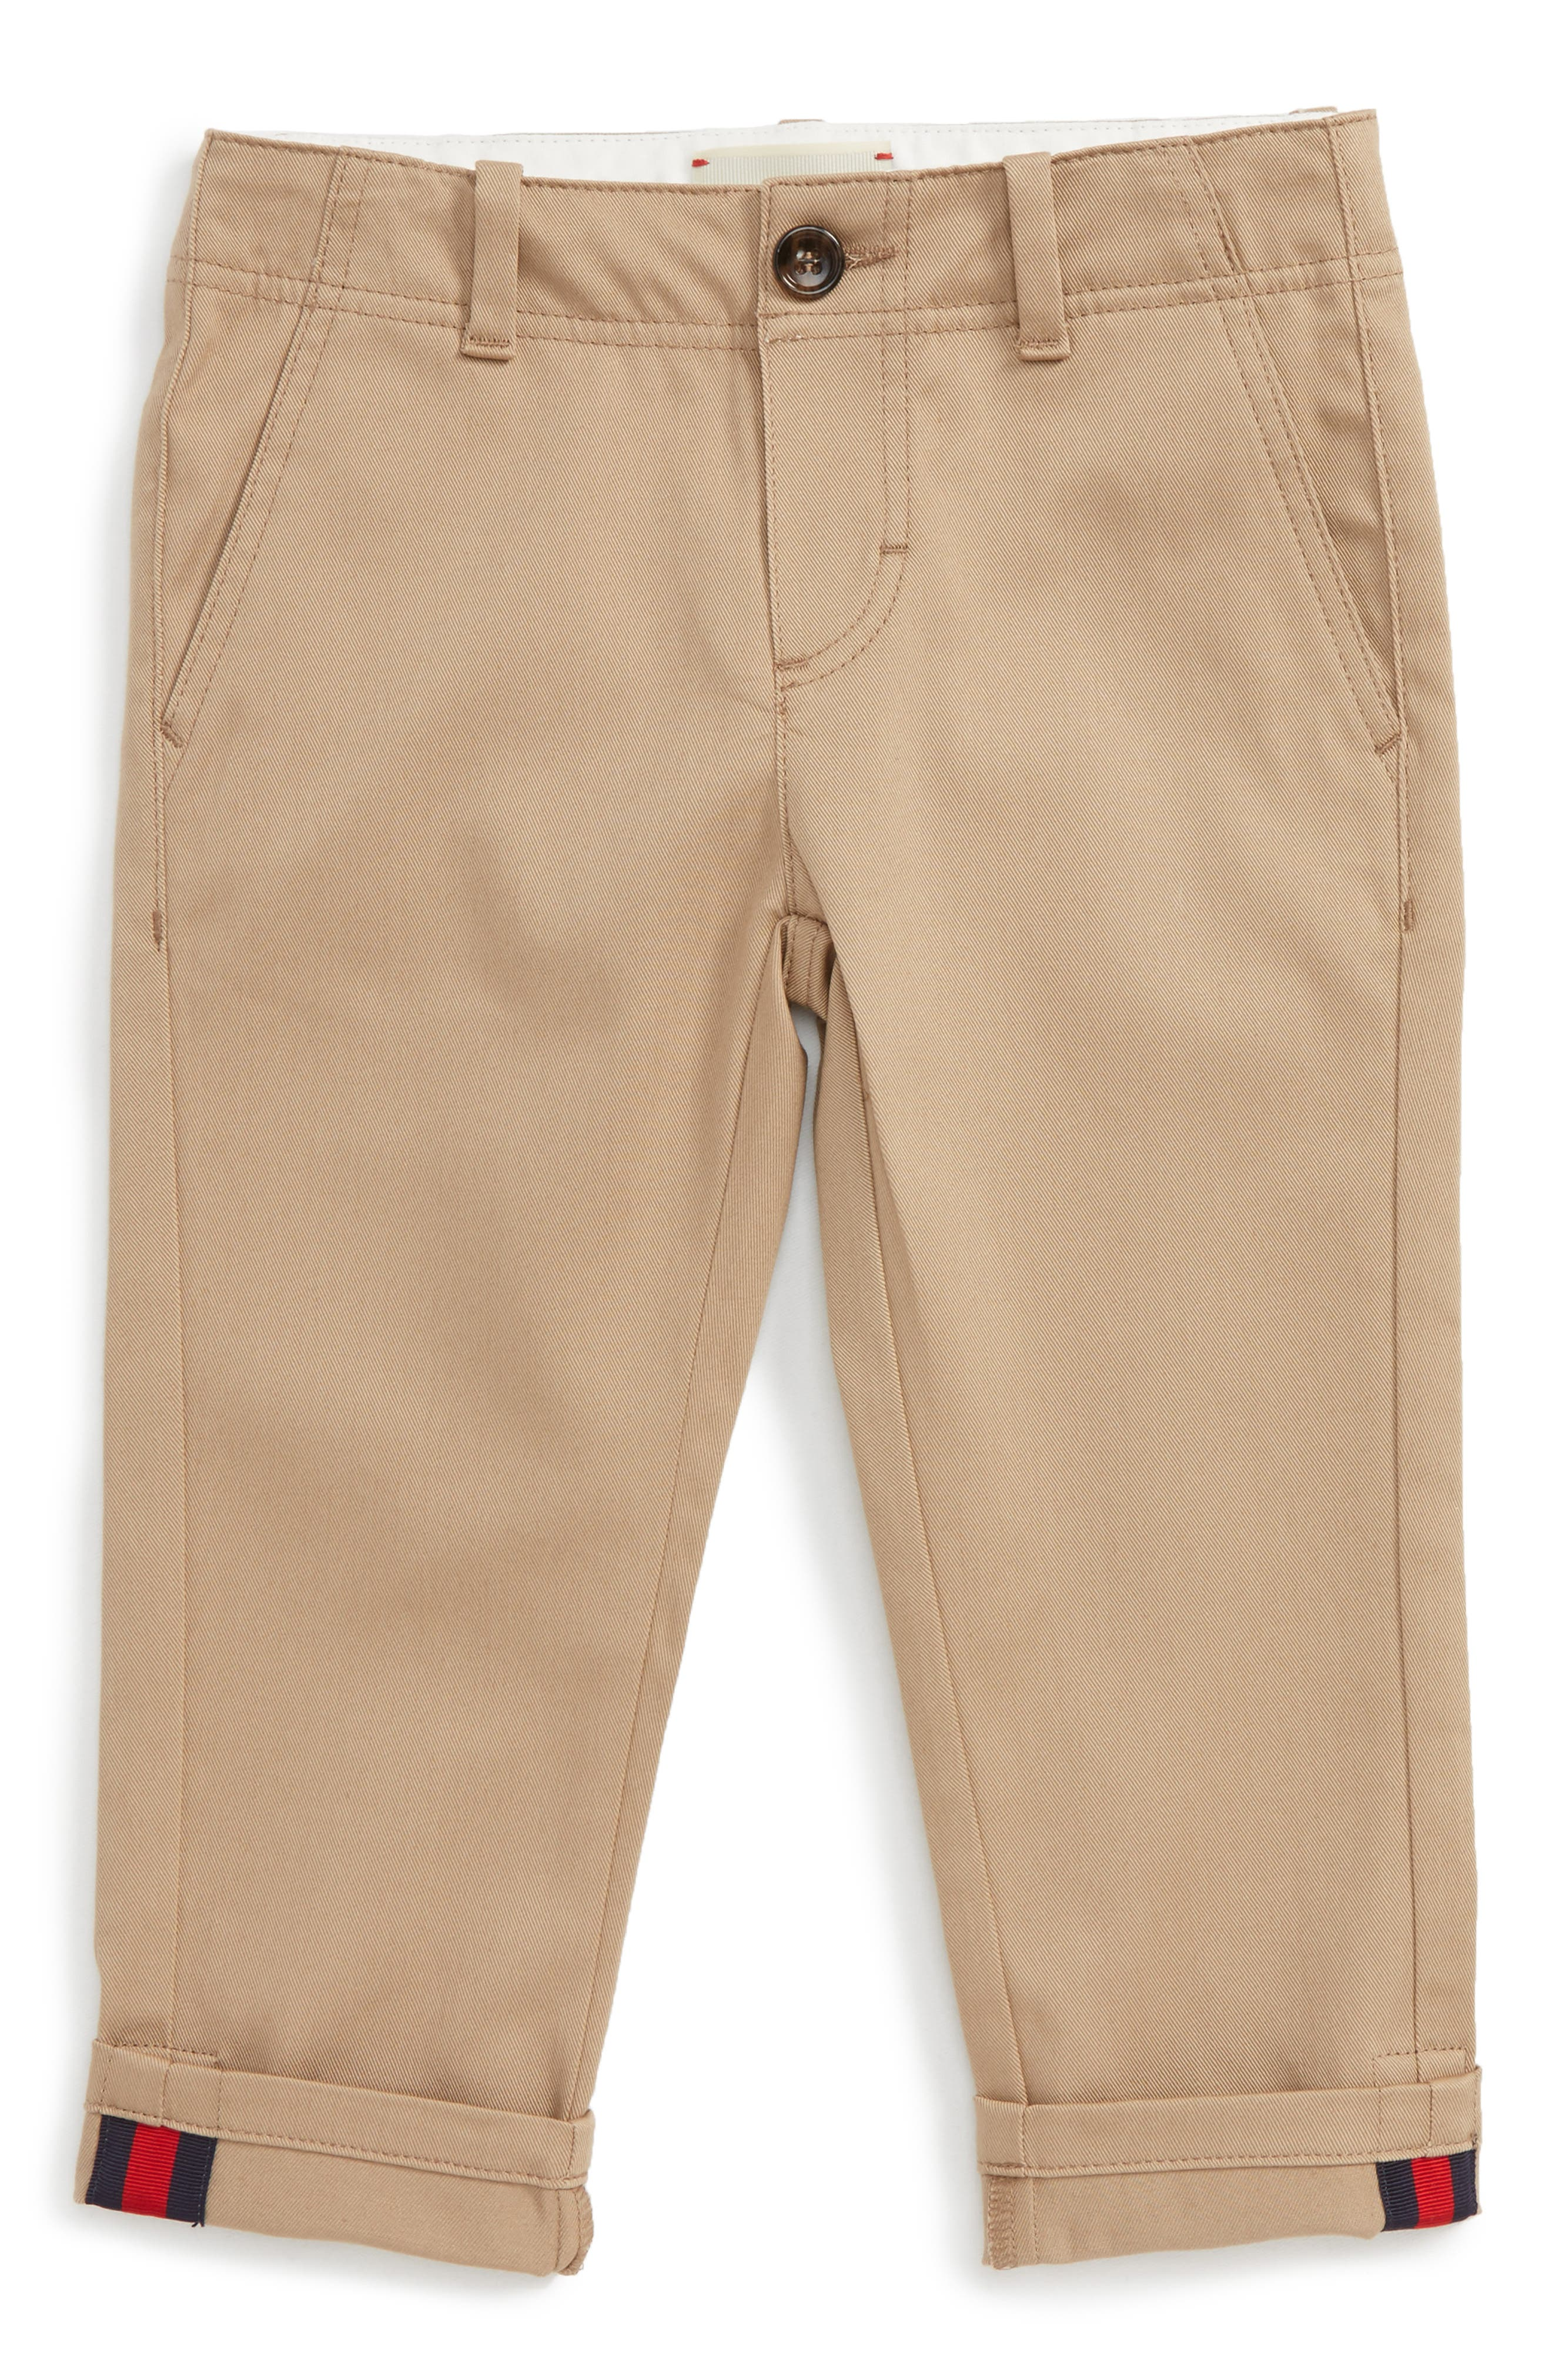 Alternate Image 1 Selected - Gucci Chino Pants (Baby Boys)